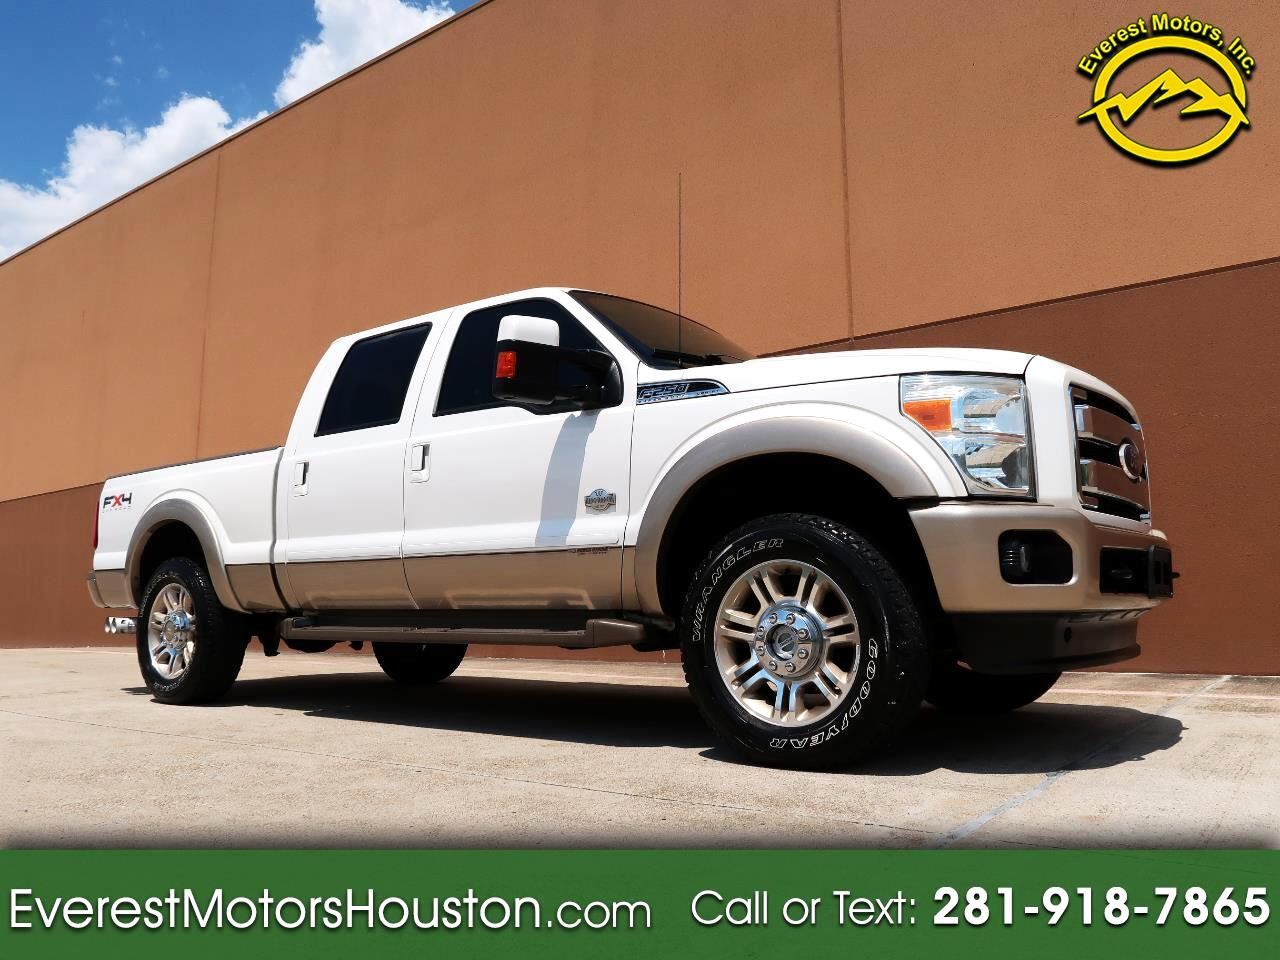 2011 Ford F-250 SD KING RANCH CREW CAB SHORT BED 4WD DIESEL